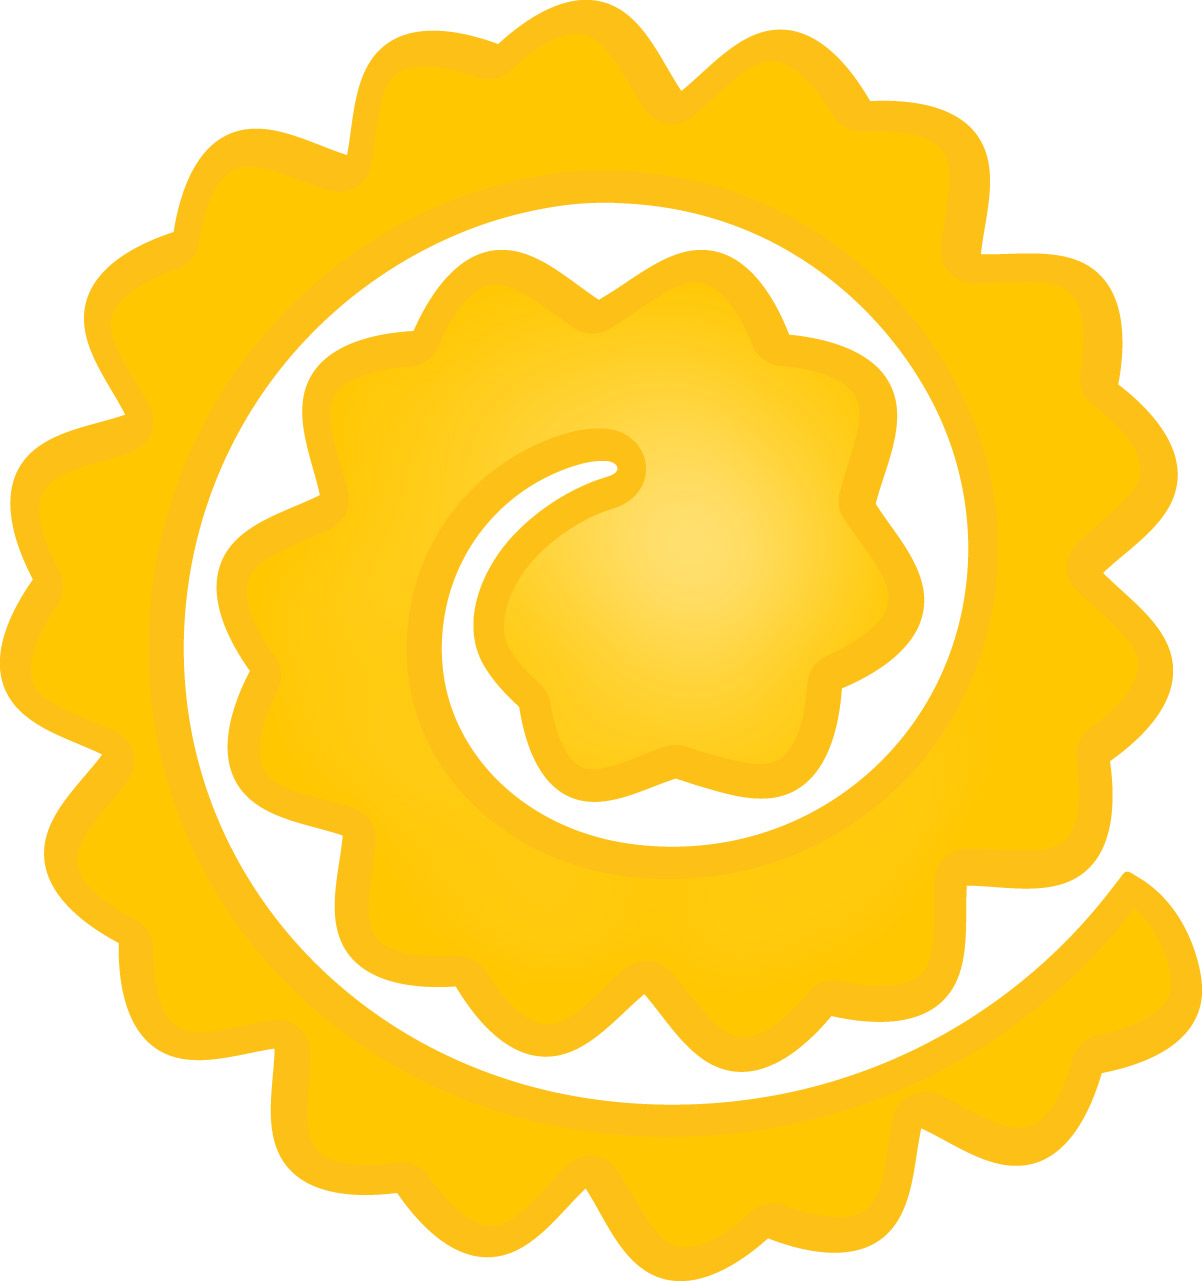 Flower Template To Cut Out - ClipArt Best